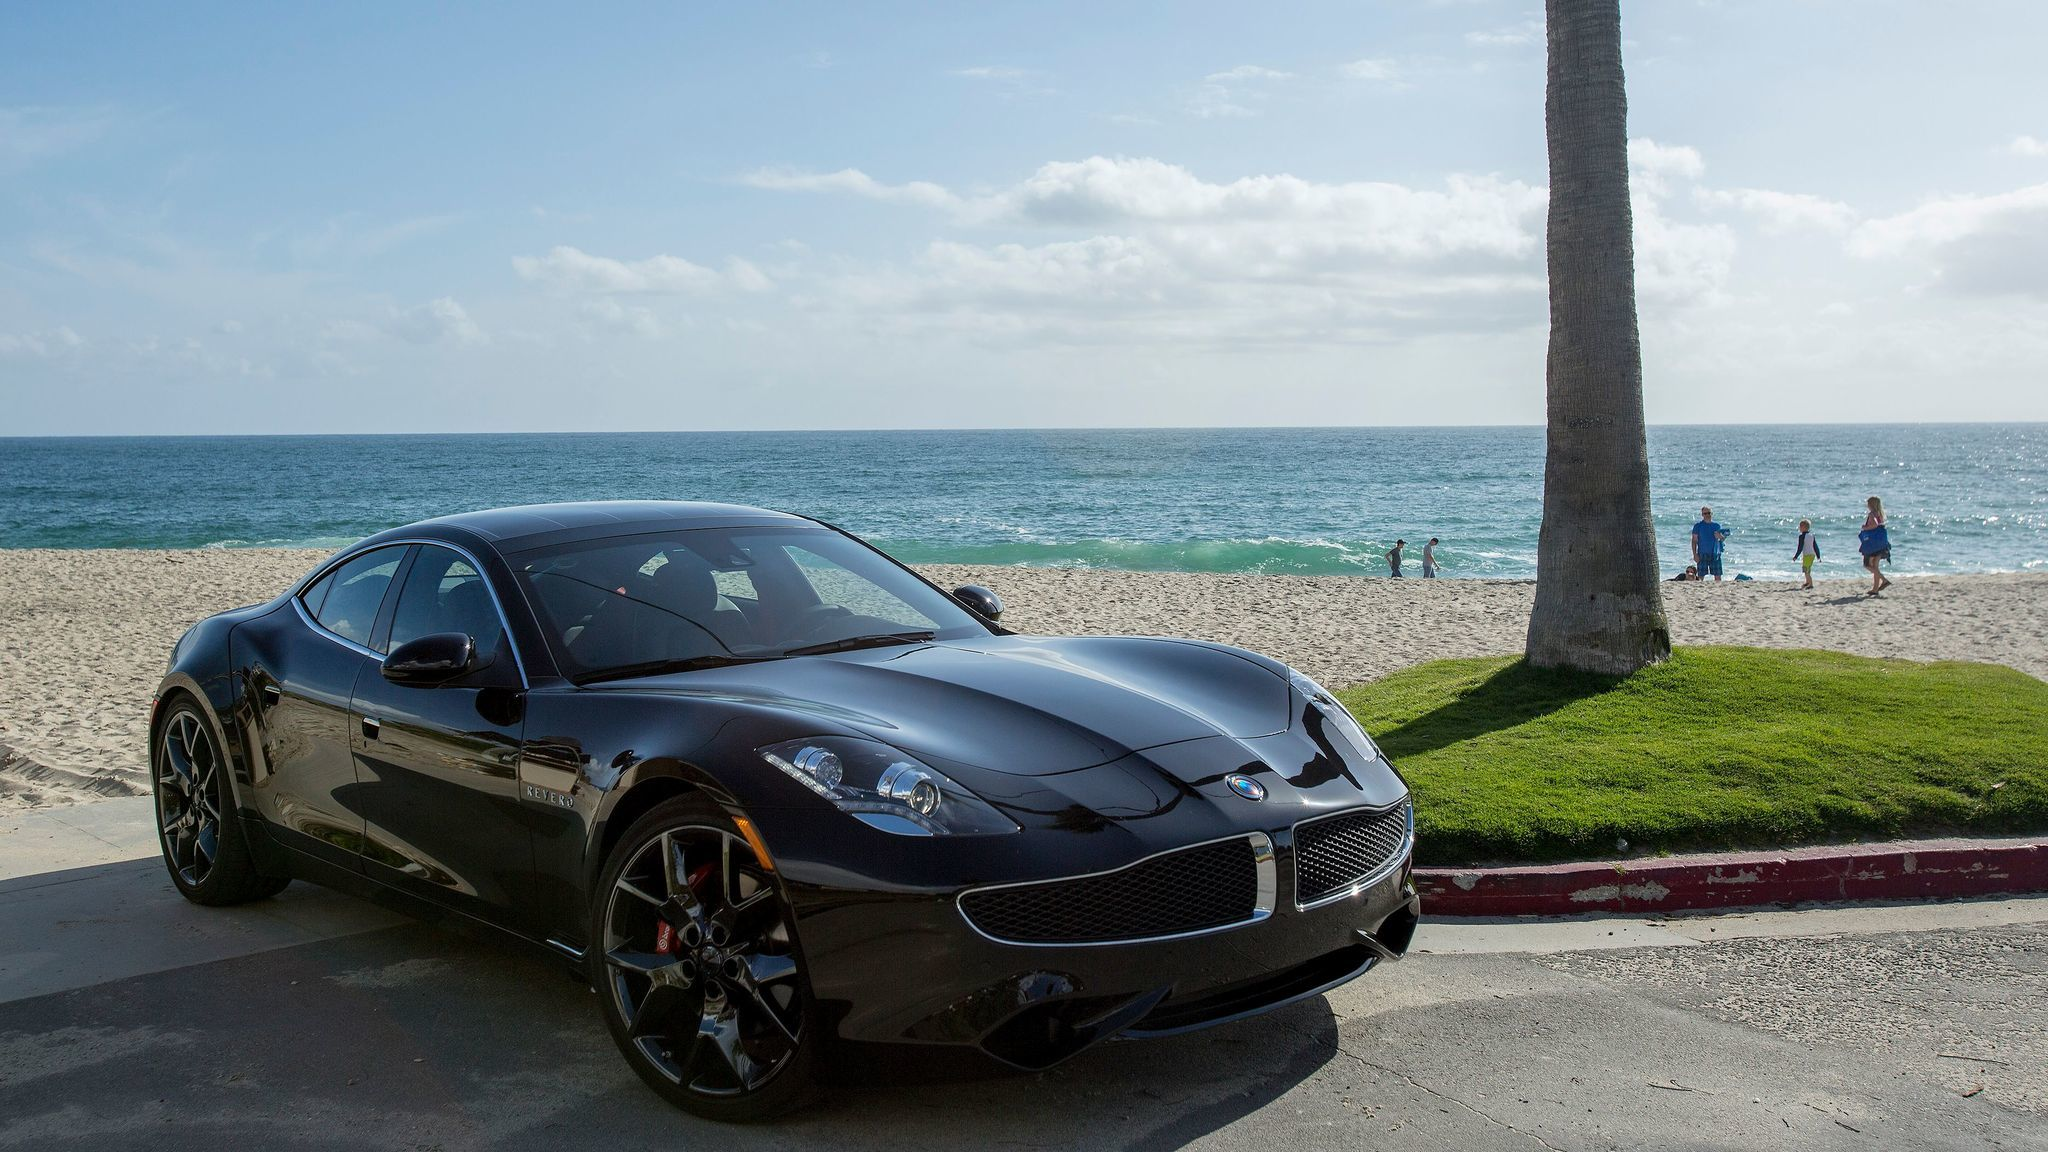 The sleek, low slung Revero features design language from the pen of Henrik Fisker, whose company of that name built the original Karma.